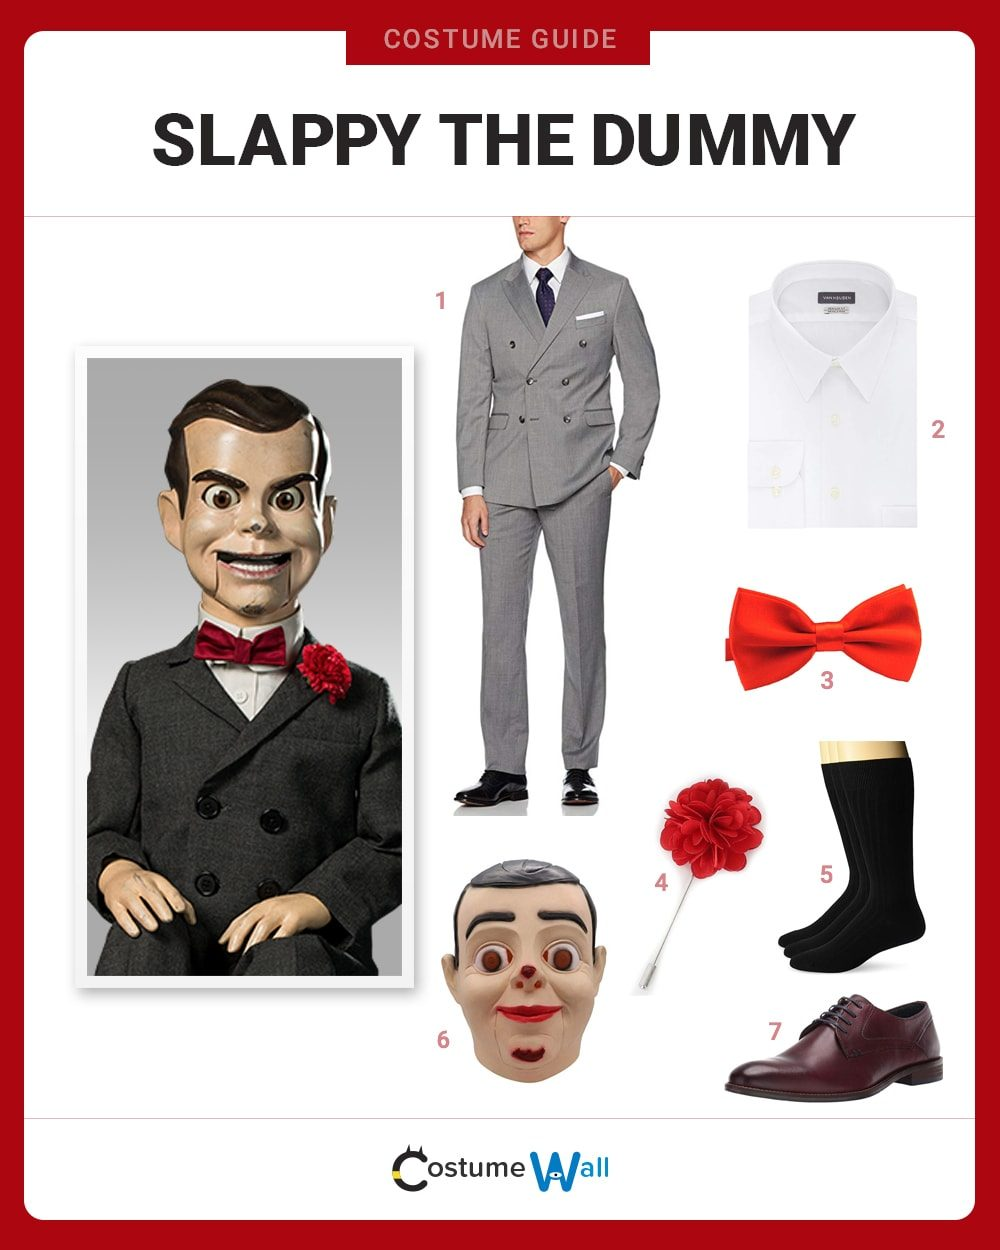 Slappy the Dummy Costume Guide